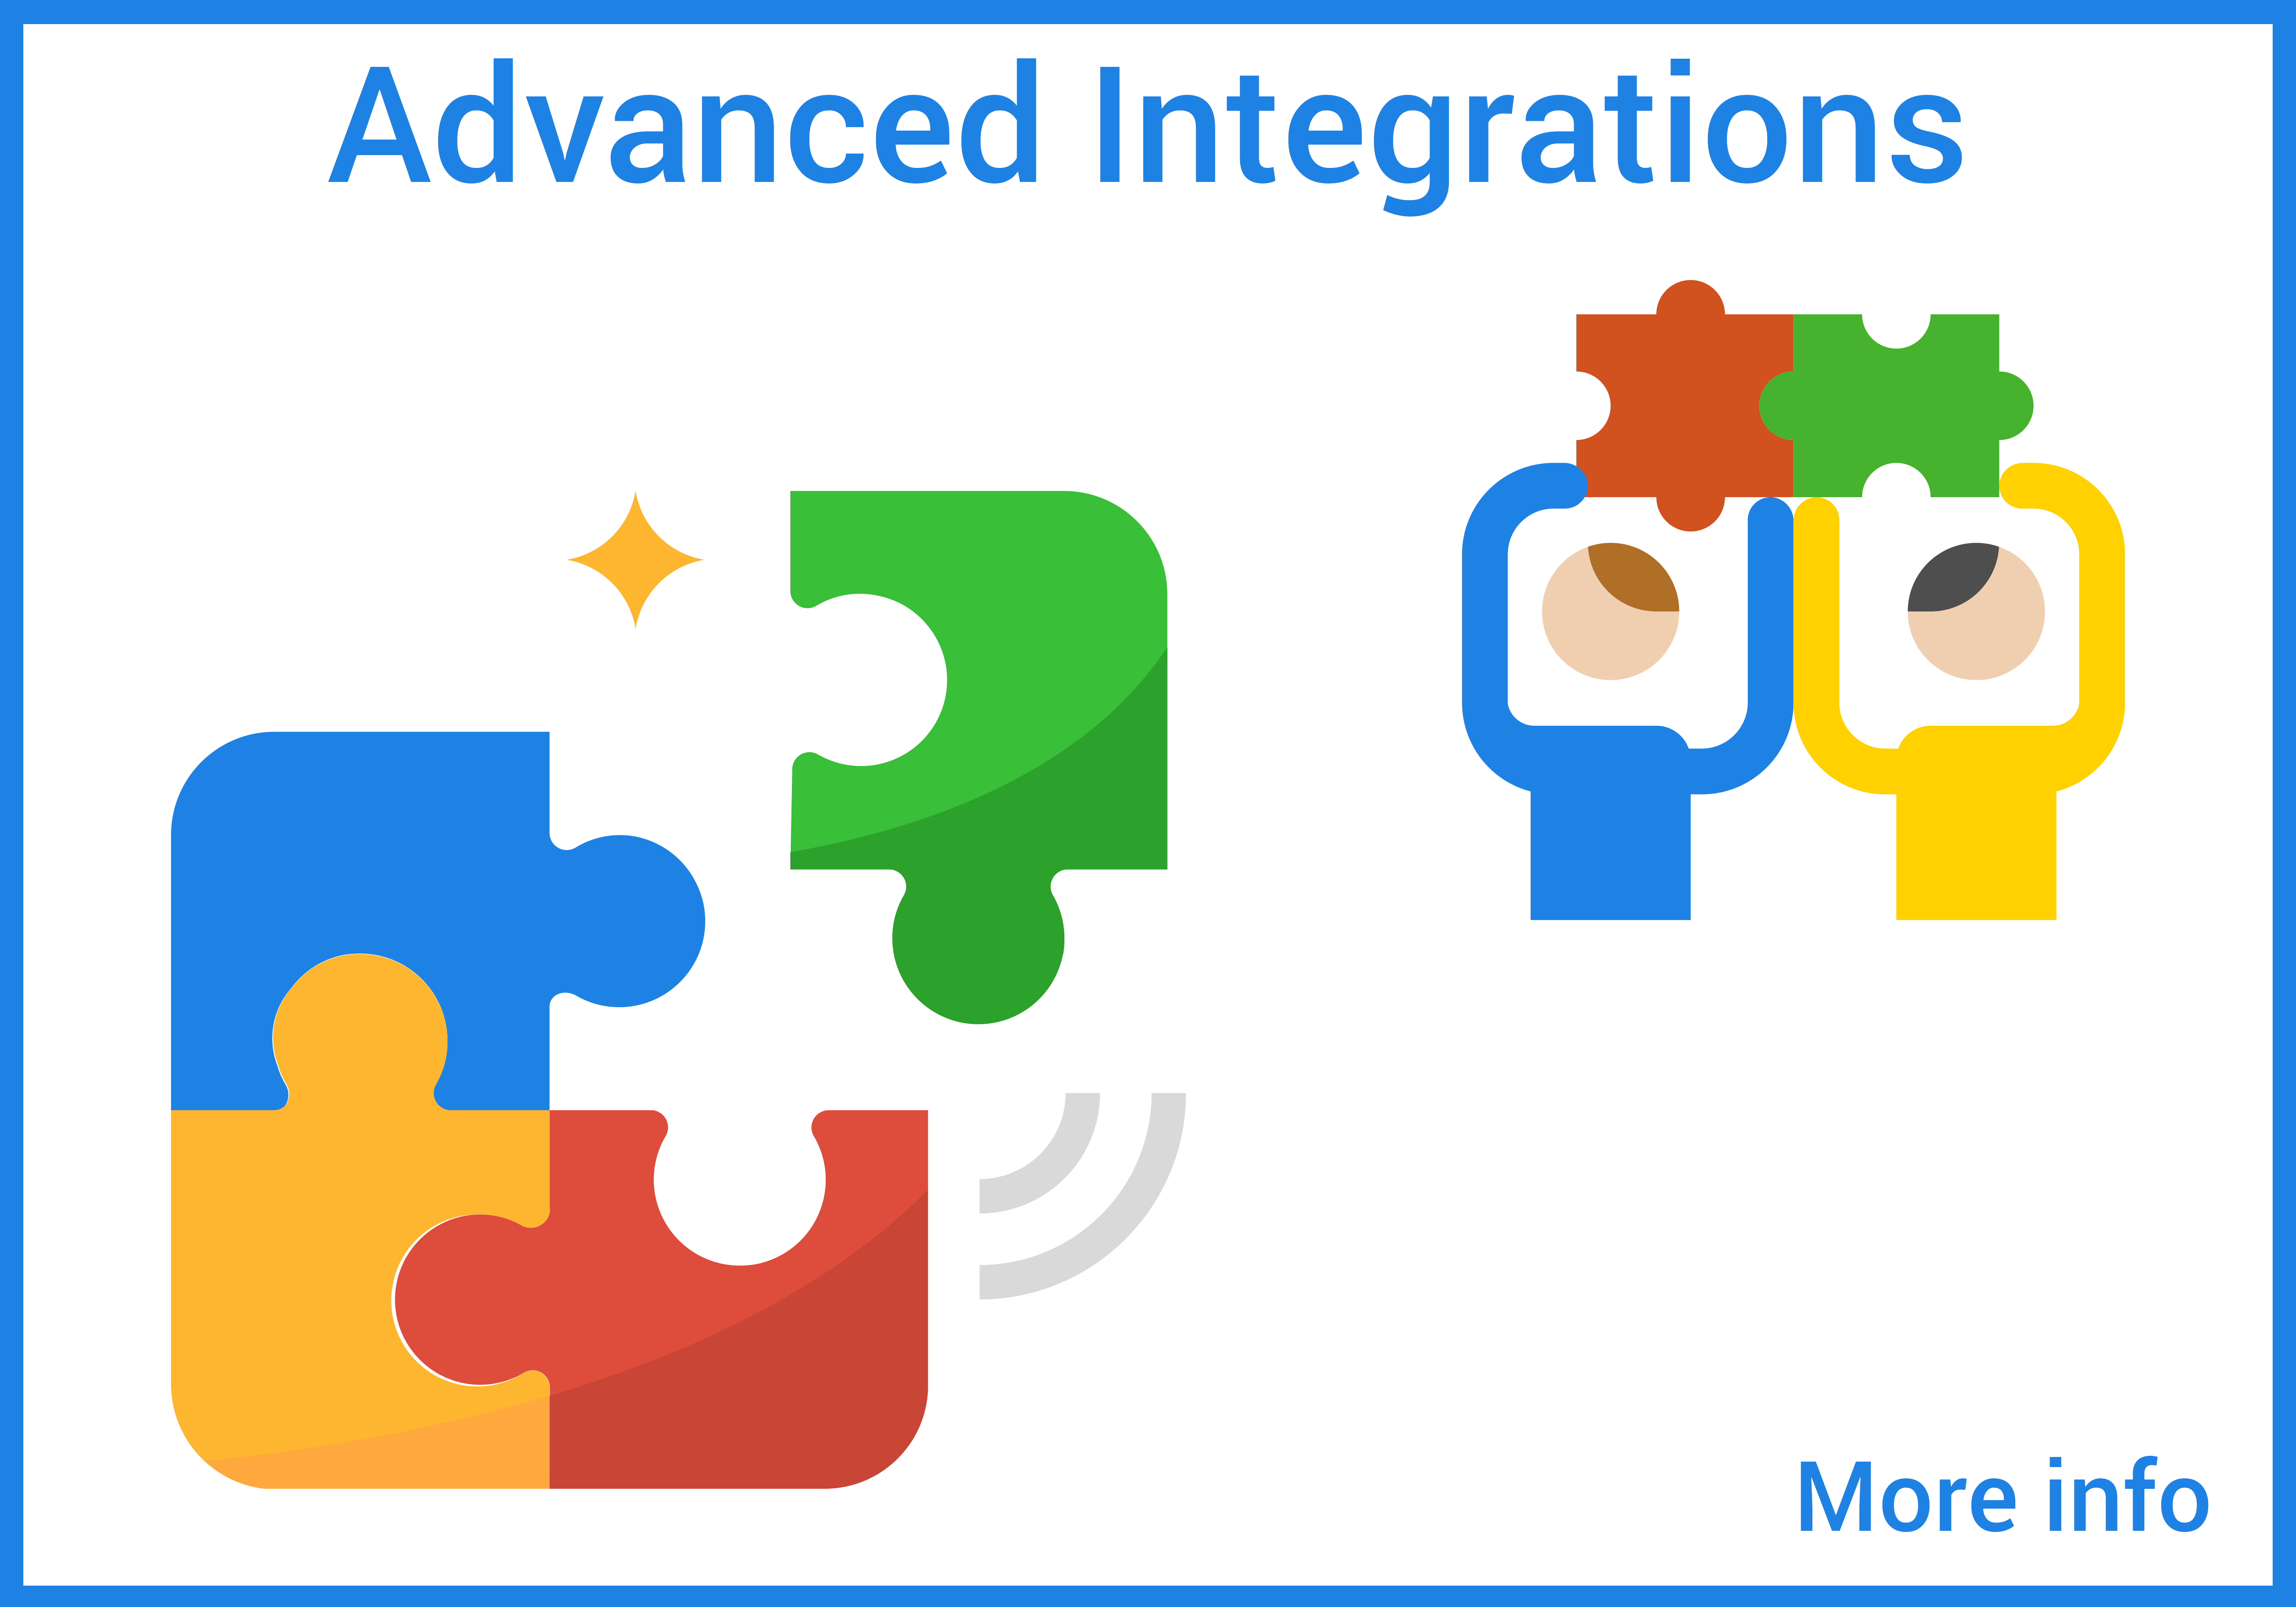 Advanced Integrations_ALLOcloud